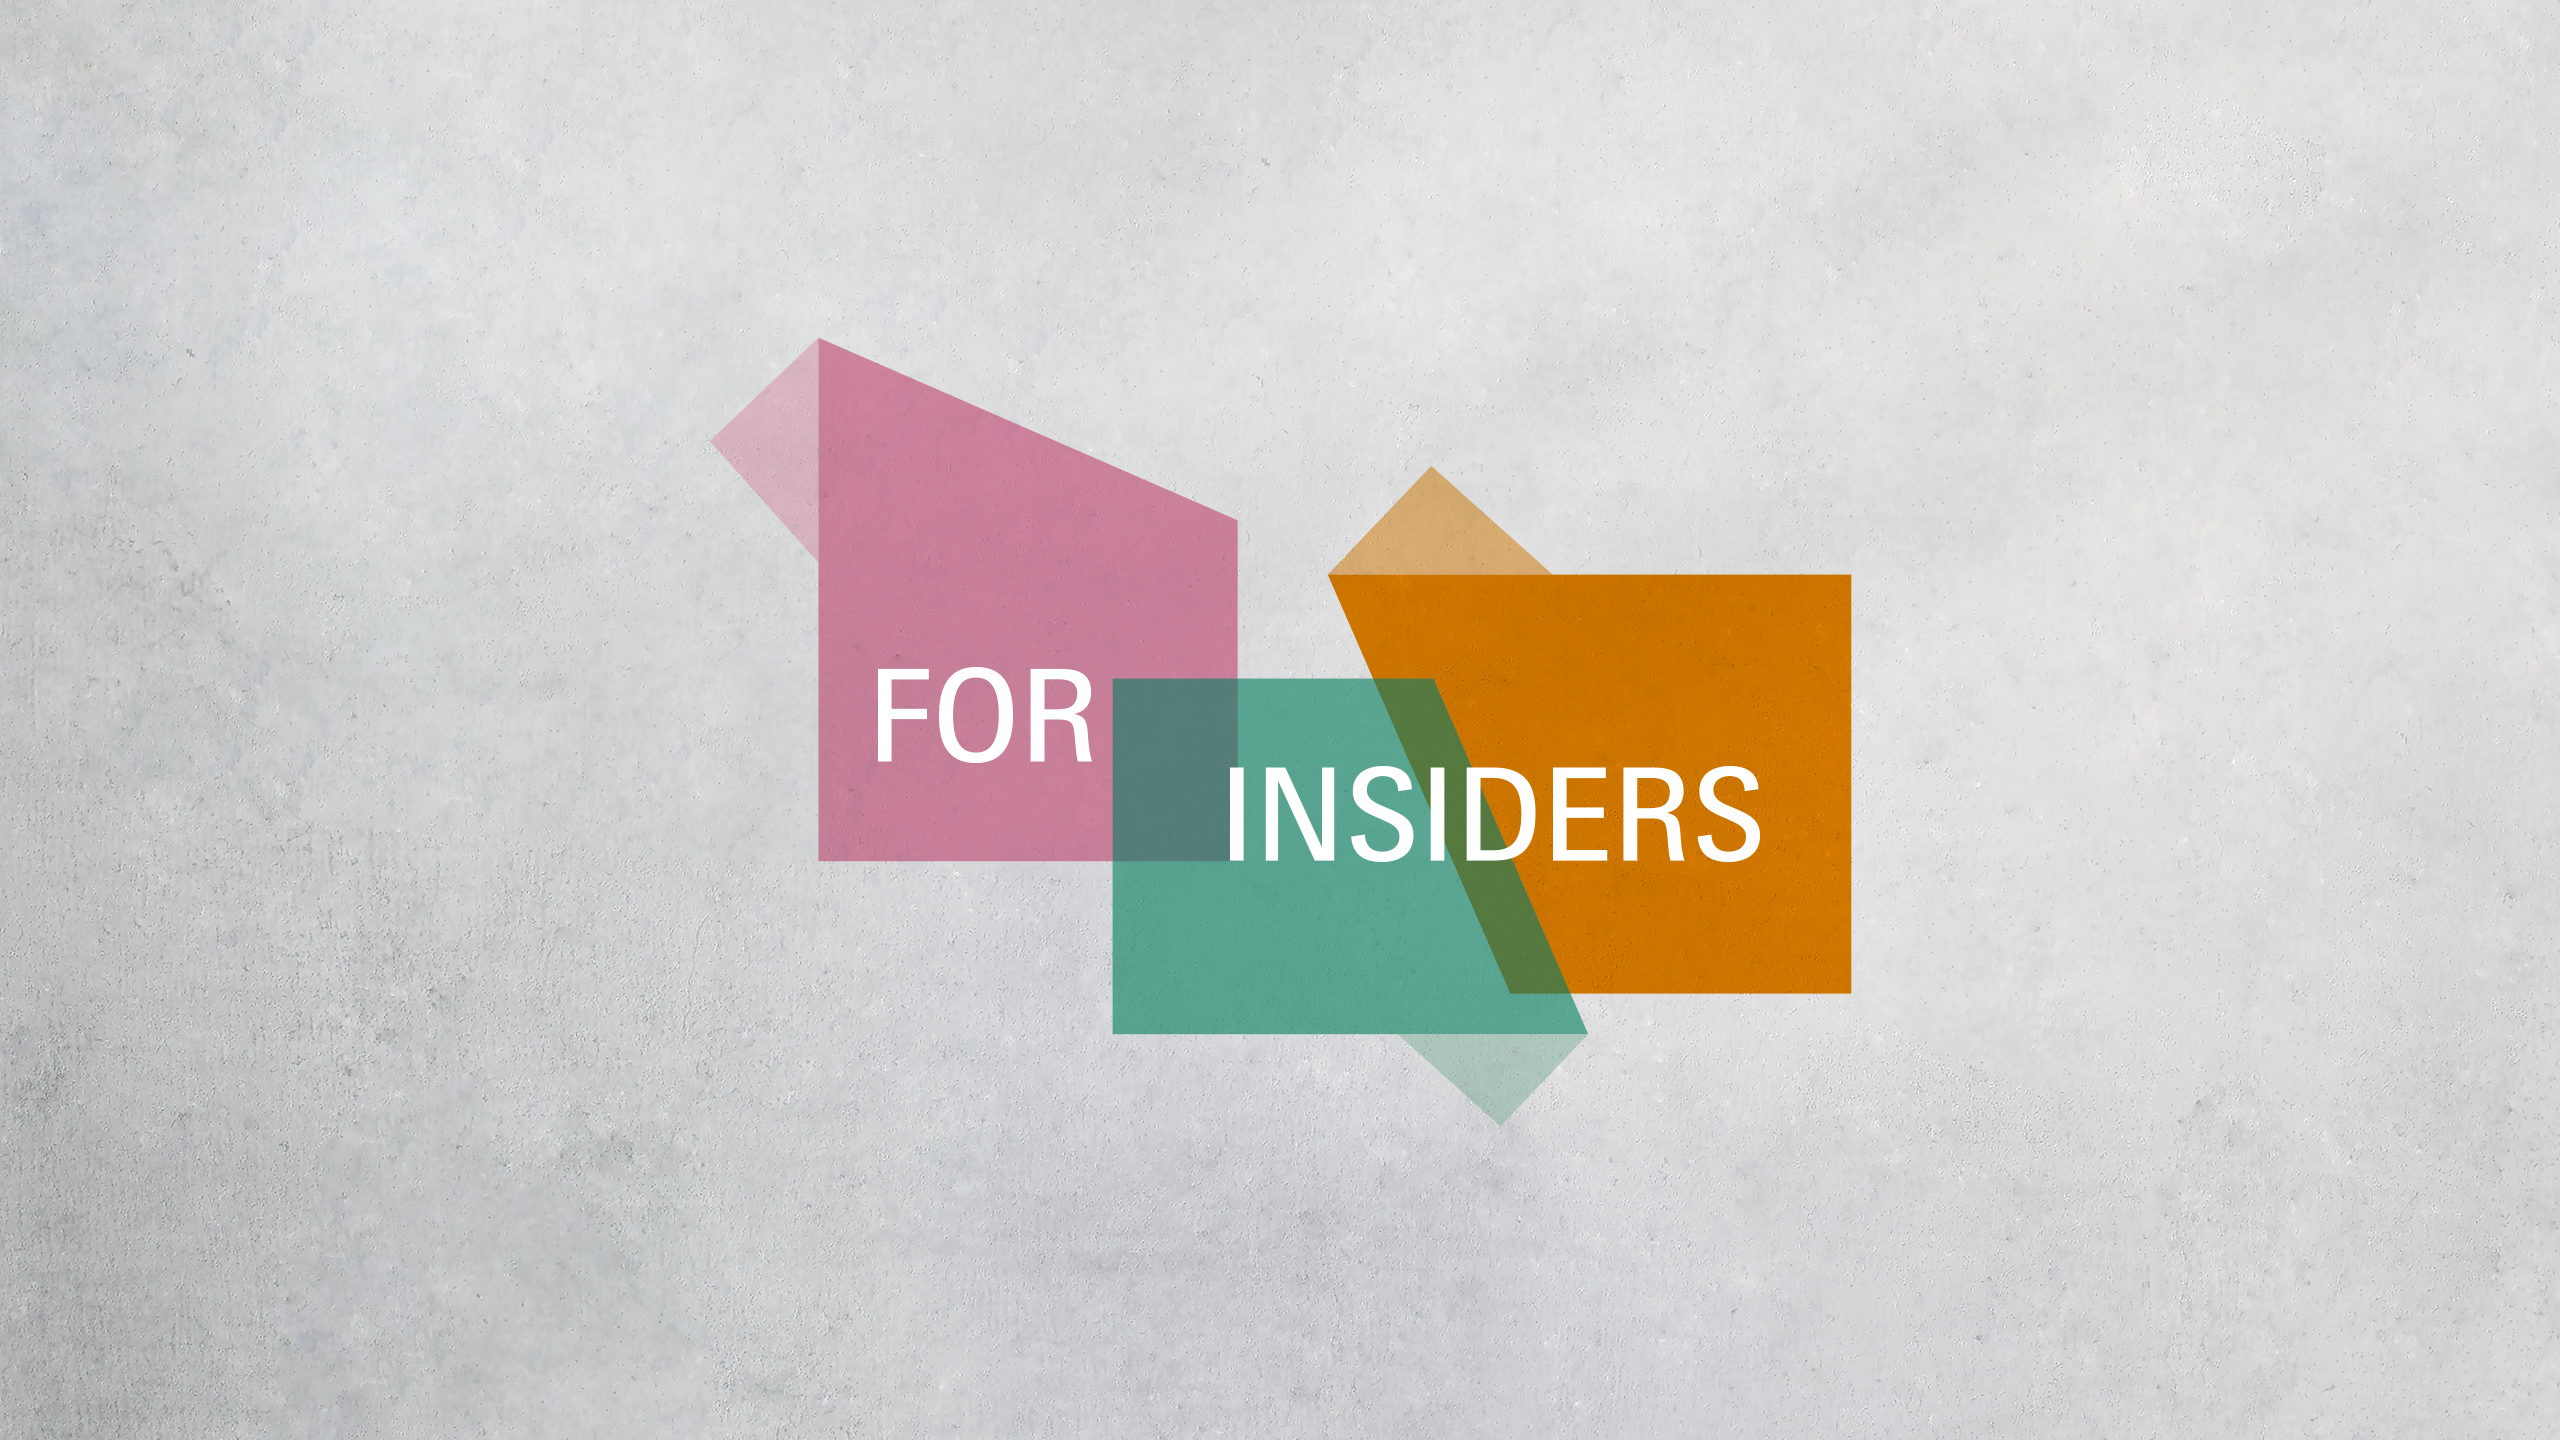 FOR INSIDERS